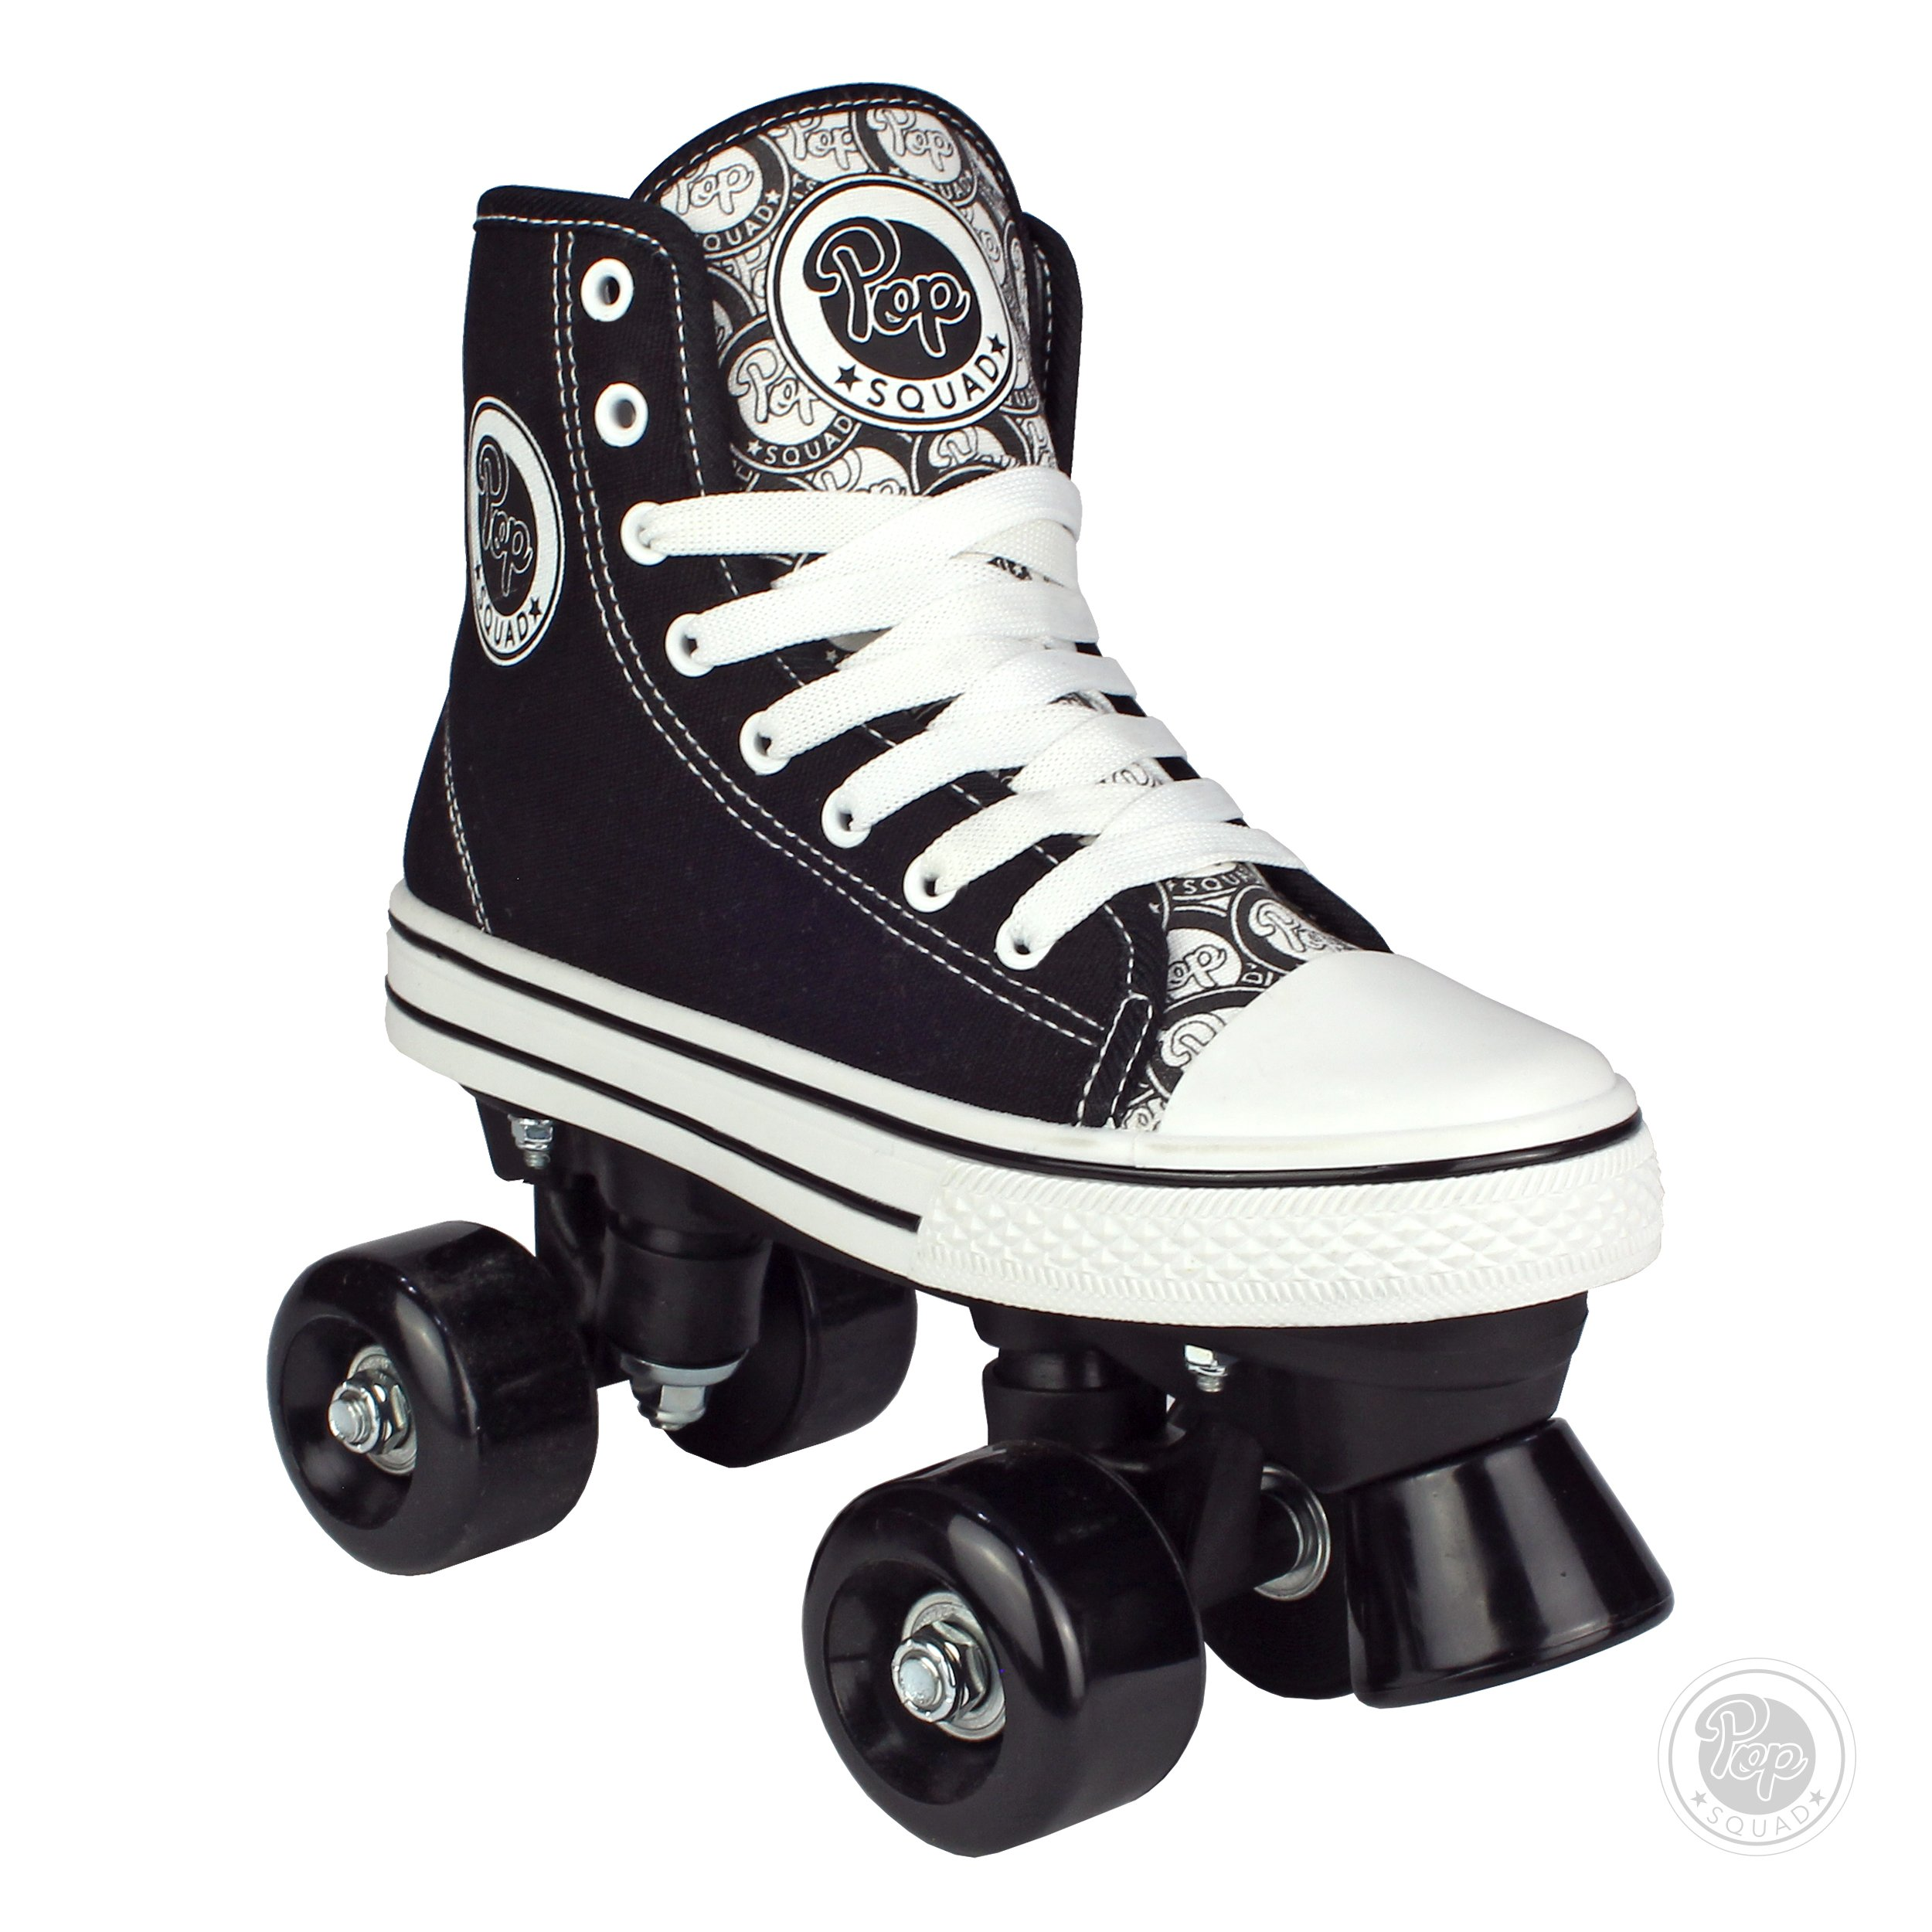 Pop Squad Midtown Girl's and Boy's Roller Skates - Black (5)